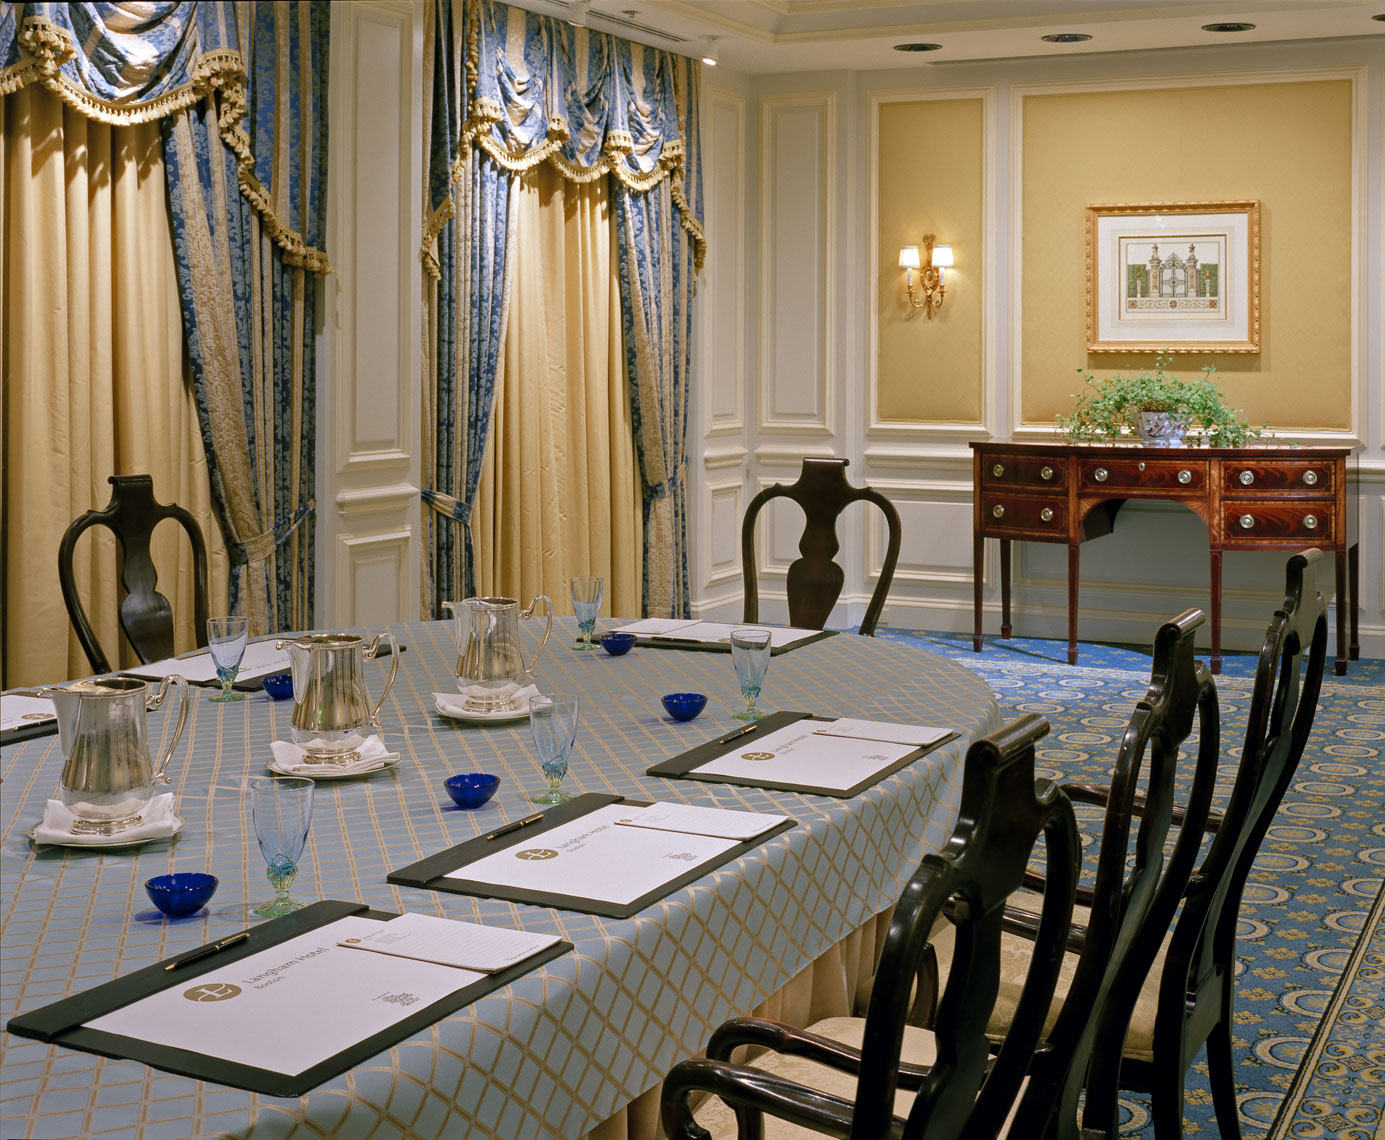 Classic Meeting Room, Interior Design by Kenneth E. Hurd & Associates